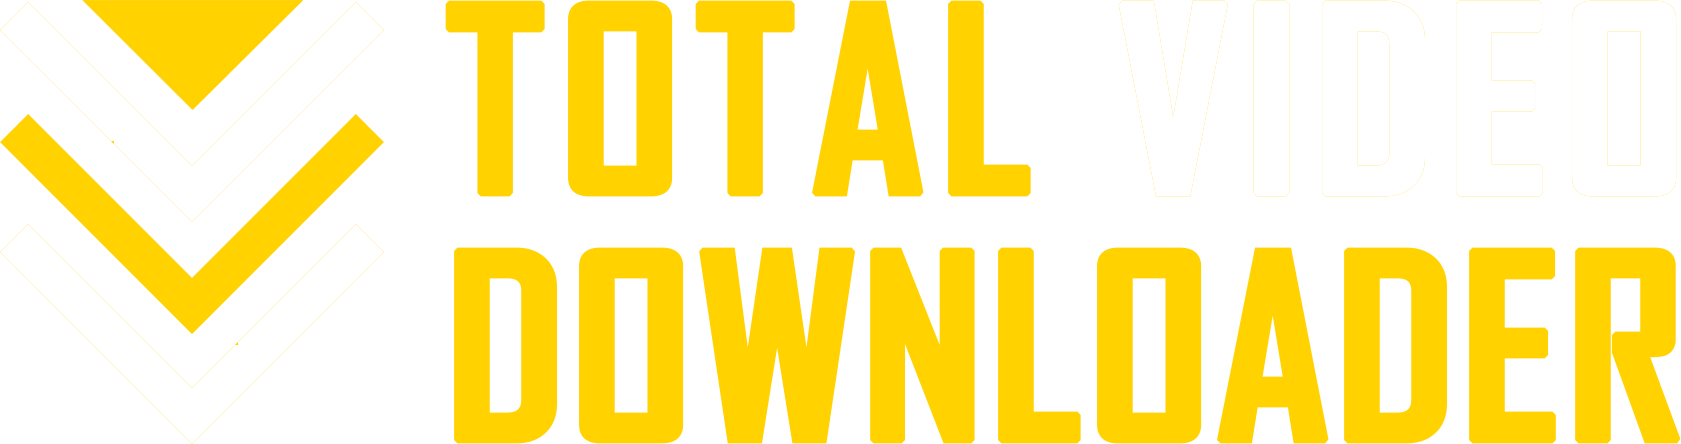 Total Video Downloader